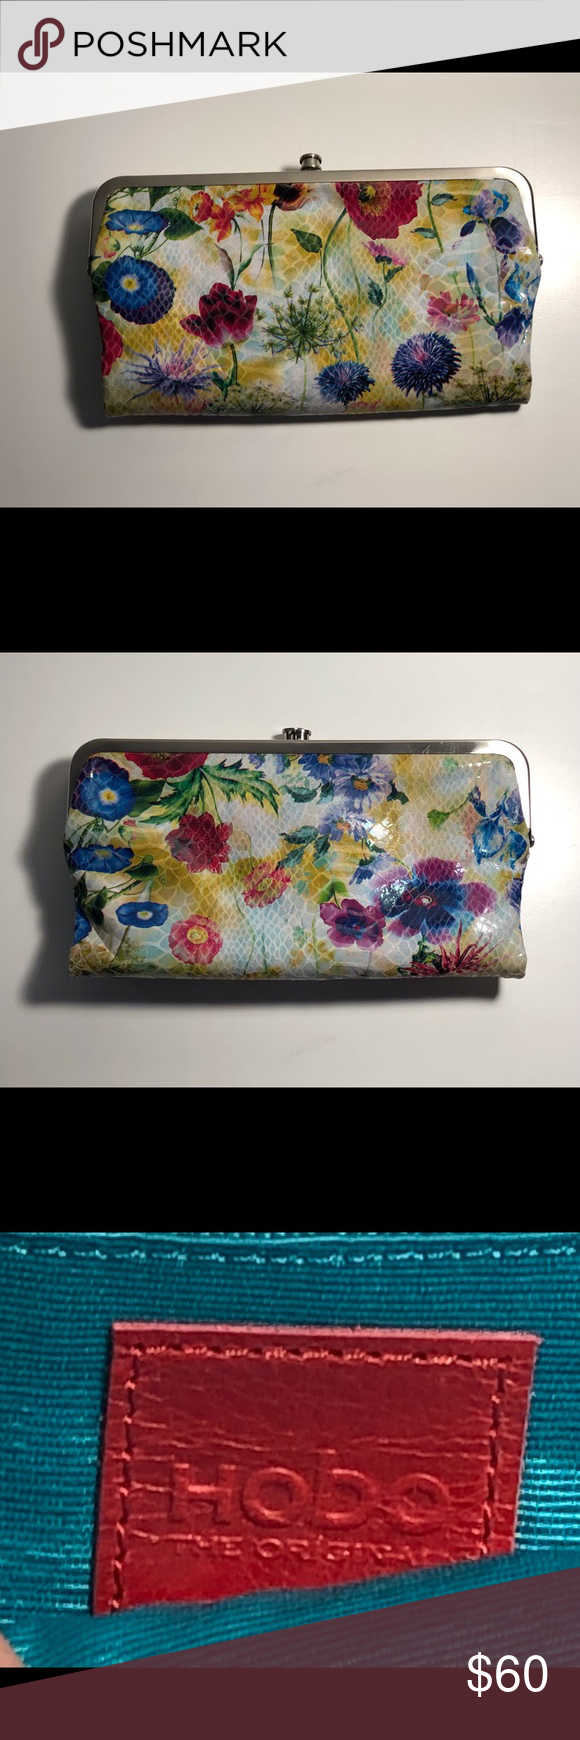 25fd51afe Hobo iconic Lauren leather clutch/wallet Chic floral leather clutch wallet  with multiple credit card slots, slots to hold cash and large clutch  opening.